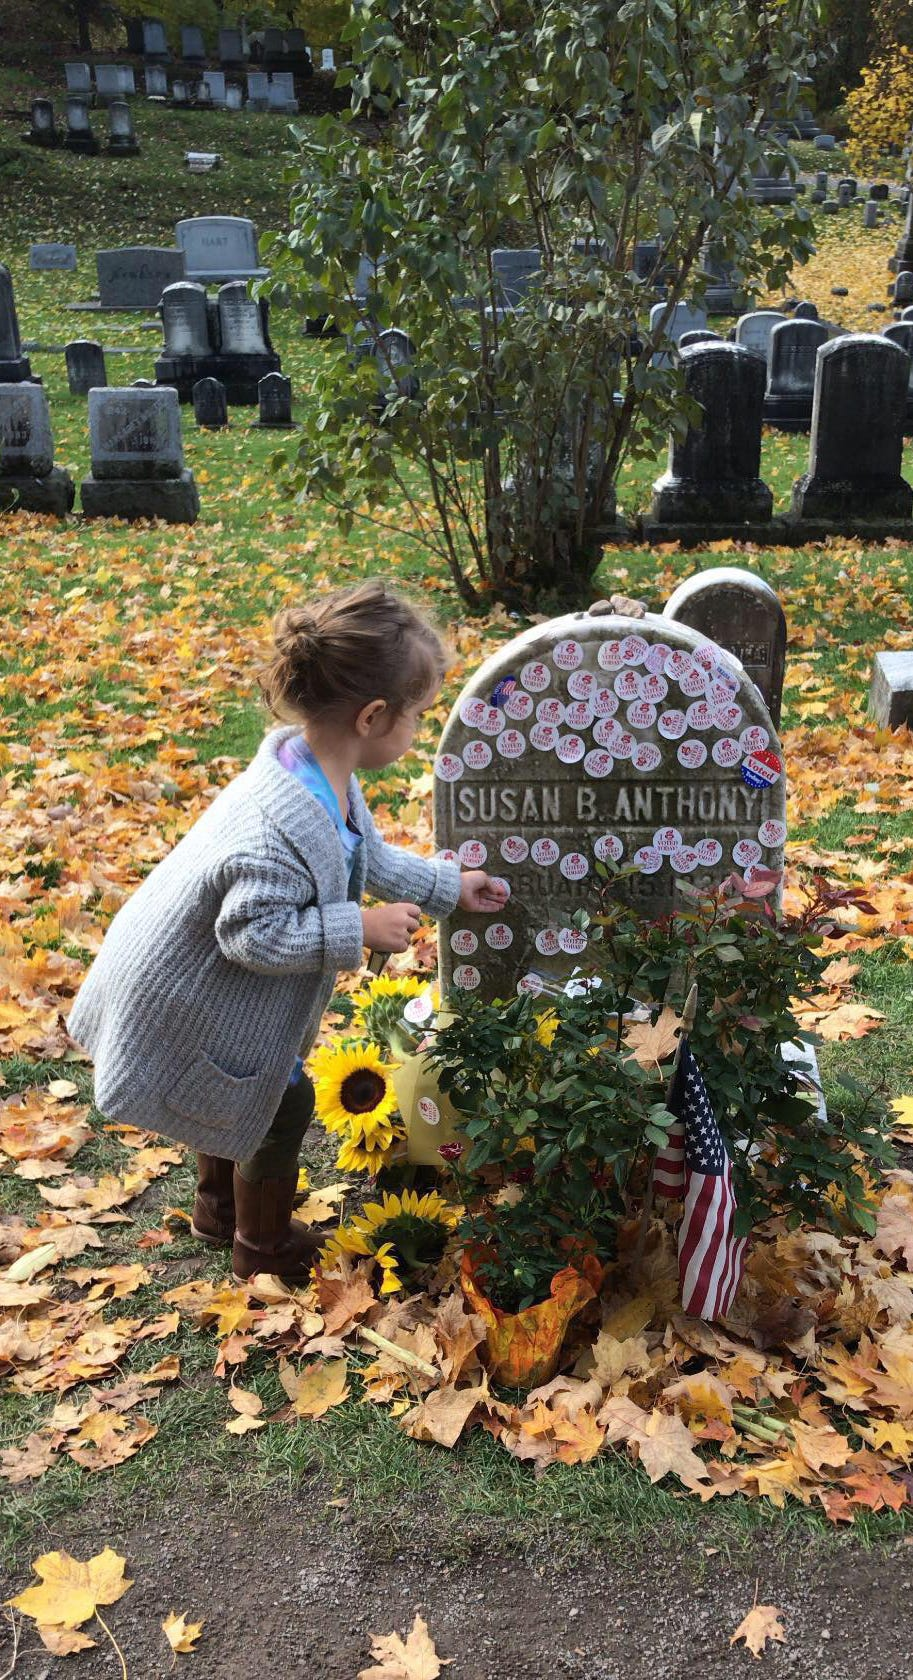 Nob 6 2018 Rochester Ny Usa Nora Ray Puts Her Mother S Sticker On Susan B Anthony S Grave In Mt Hope Cemetery On Election Day Tina Macintyre Yee Rochester Democrat And Chronicle Via Usa Today Network